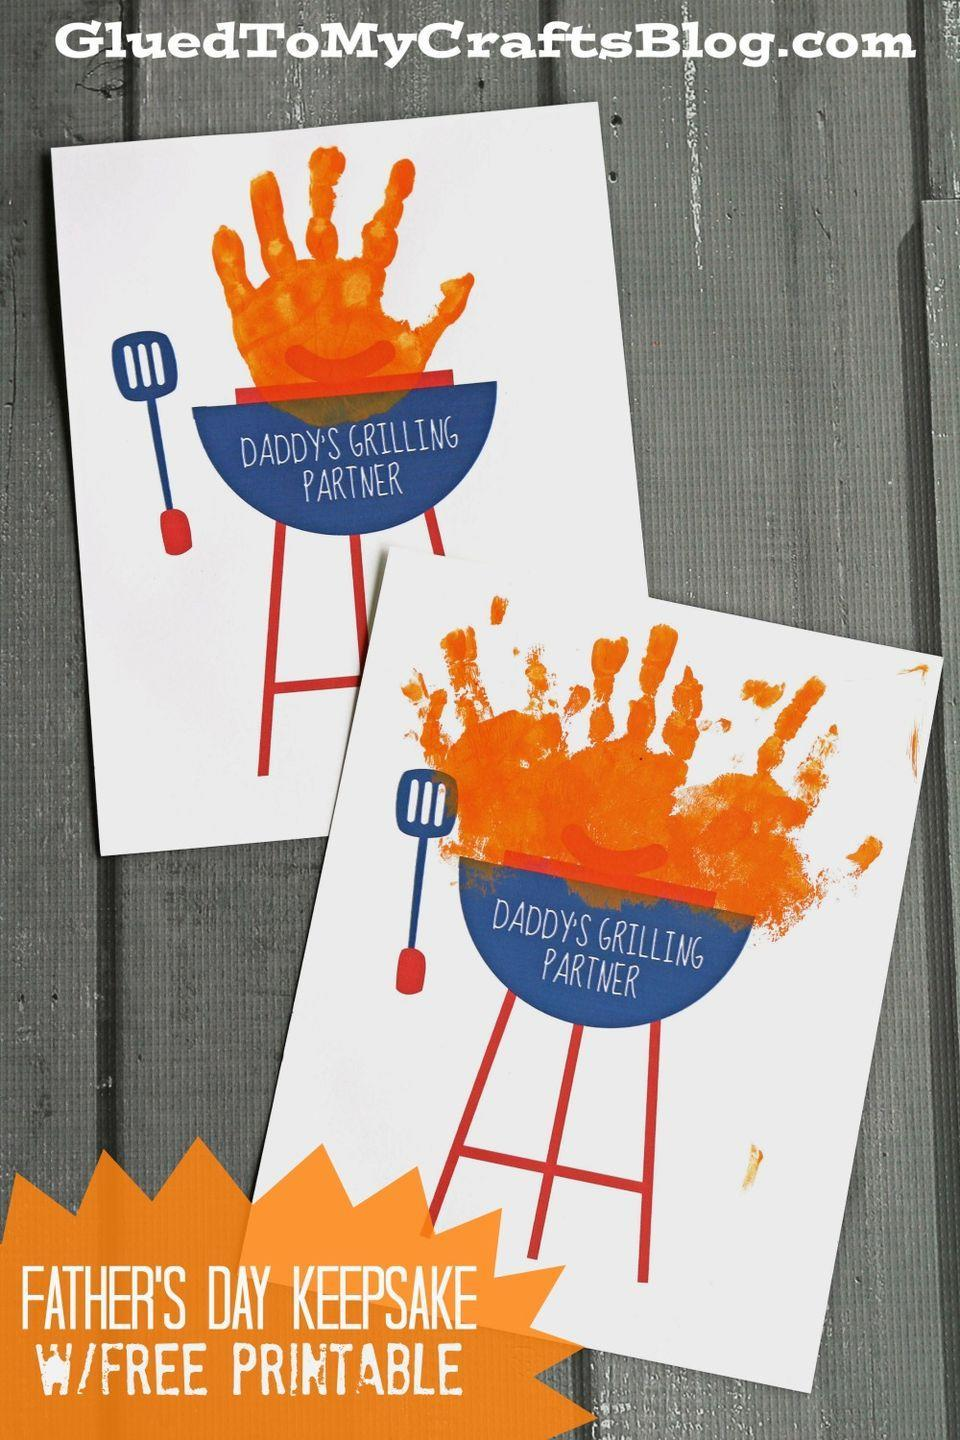 """<p>Make copies of this <a href=""""http://gluedtomycraftsblog.com/2016/05/daddys-grilling-partner-keepsake-wfree-printable.html/daddys-grilling-partner-2"""" rel=""""nofollow noopener"""" target=""""_blank"""" data-ylk=""""slk:free grill-themed printable"""" class=""""link rapid-noclick-resp"""">free grill-themed printable</a>, then have the kids dip their hands in paint to create """"flames.""""</p><p><strong><em>Get the tutorial at <a href=""""http://gluedtomycraftsblog.com/2016/05/daddys-grilling-partner-keepsake-wfree-printable.html/daddys-grilling-partner-2"""" rel=""""nofollow noopener"""" target=""""_blank"""" data-ylk=""""slk:Glued to My Crafts"""" class=""""link rapid-noclick-resp"""">Glued to My Crafts</a>.</em></strong></p>"""